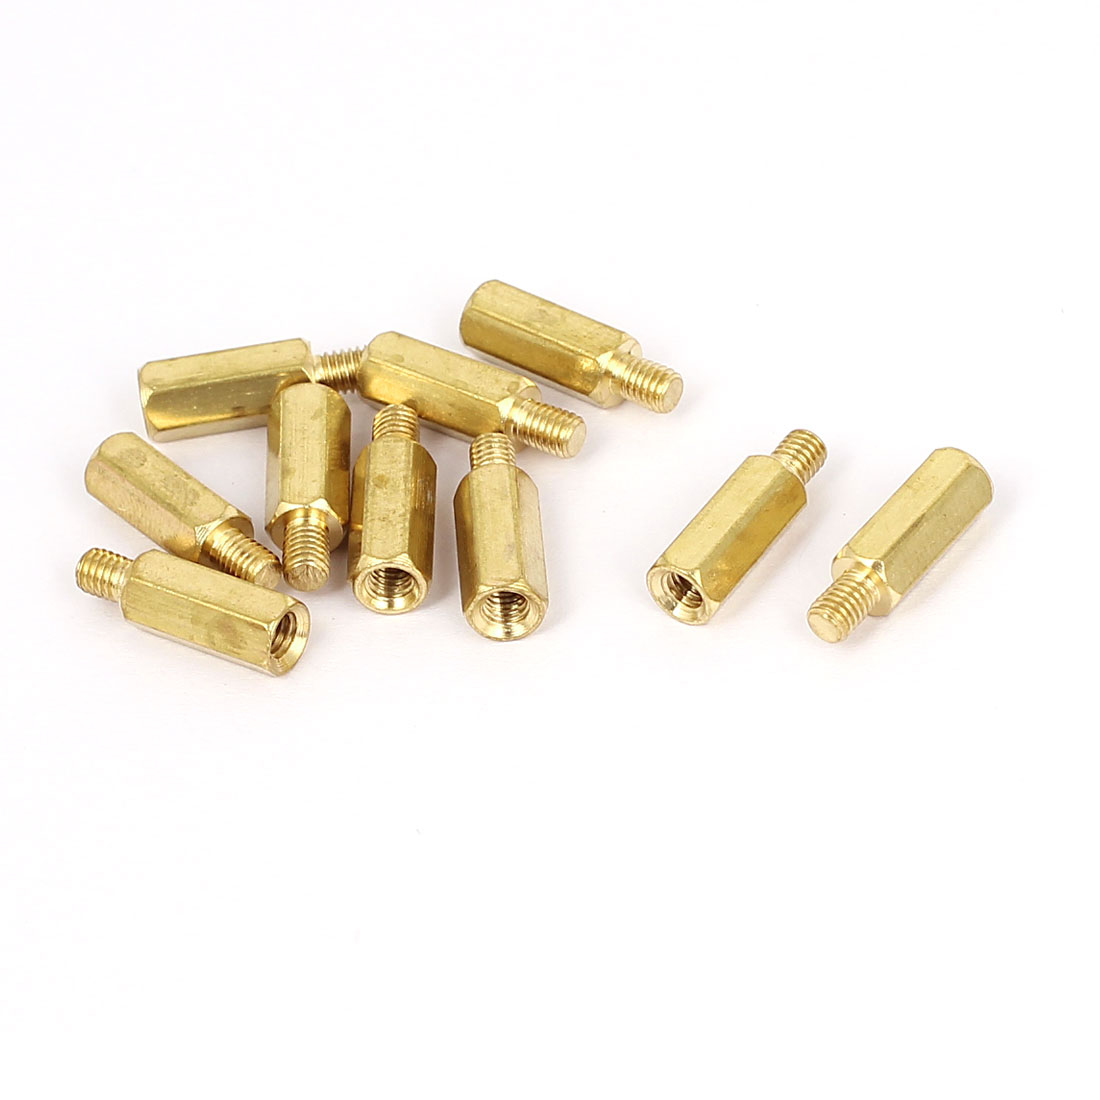 M3x11mm+4mm Male to Female Thread 0.5mm Pitch Brass Hex Standoff Spacer 10Pcs